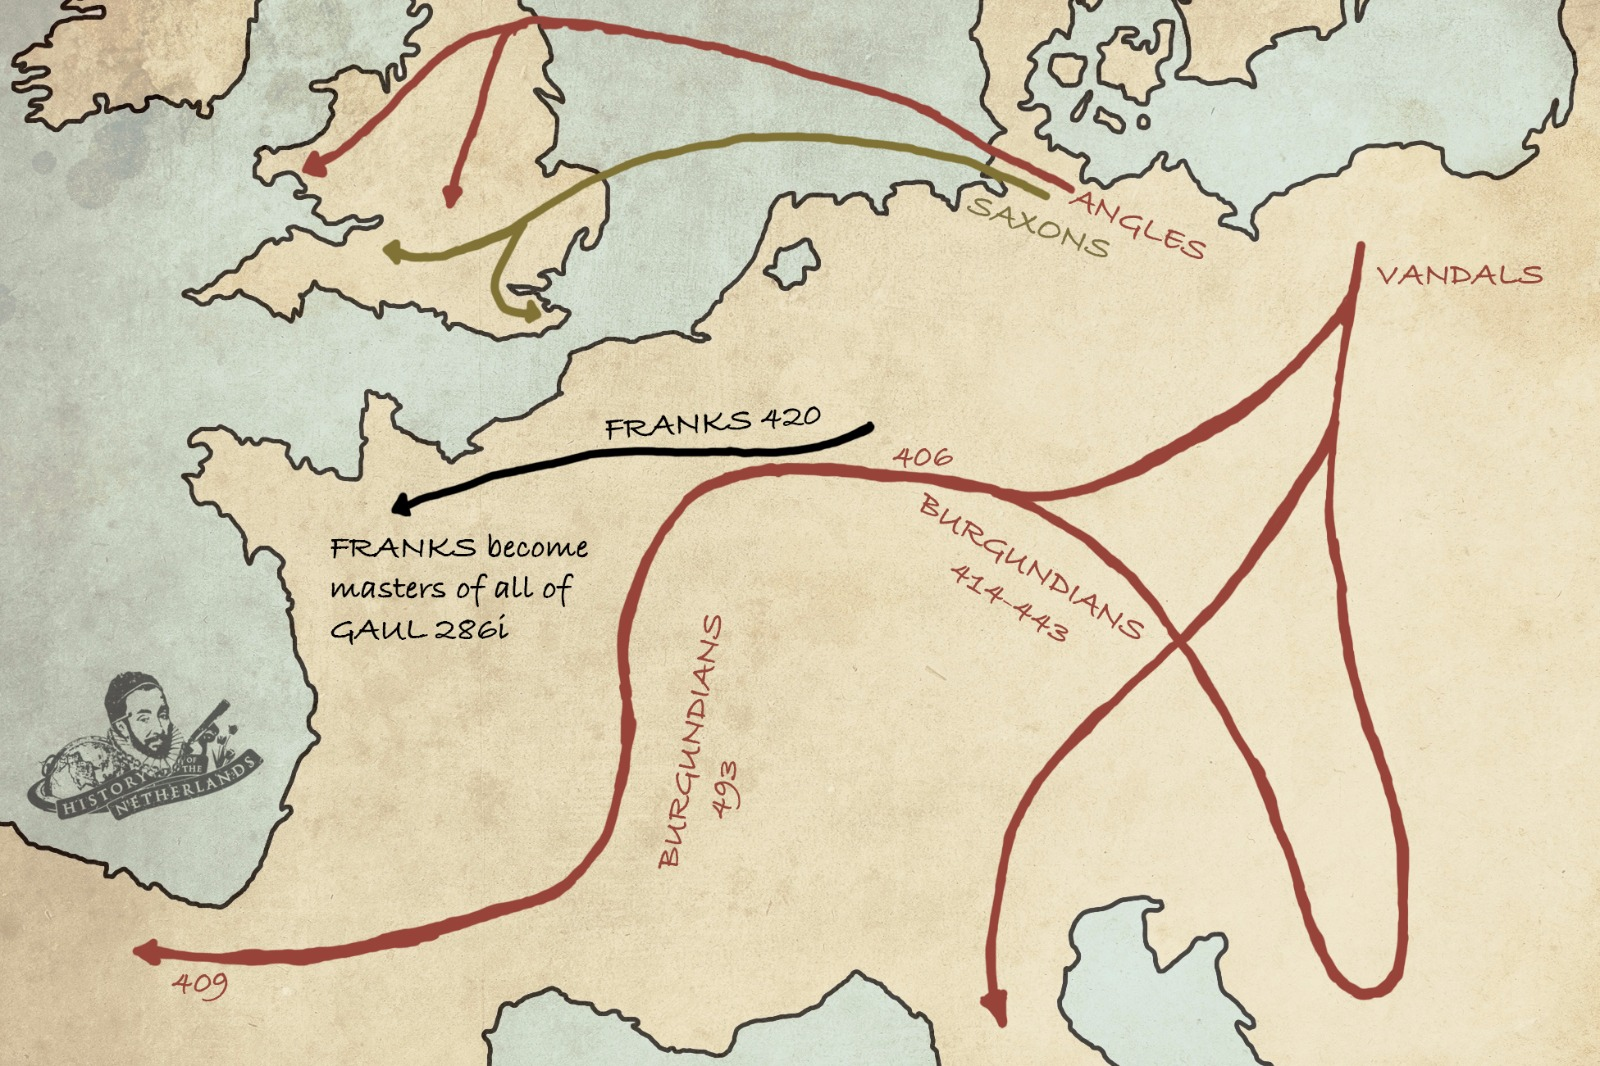 Germanic tribes spreading across Europe after Rome's collapse. Map by David Cenzer